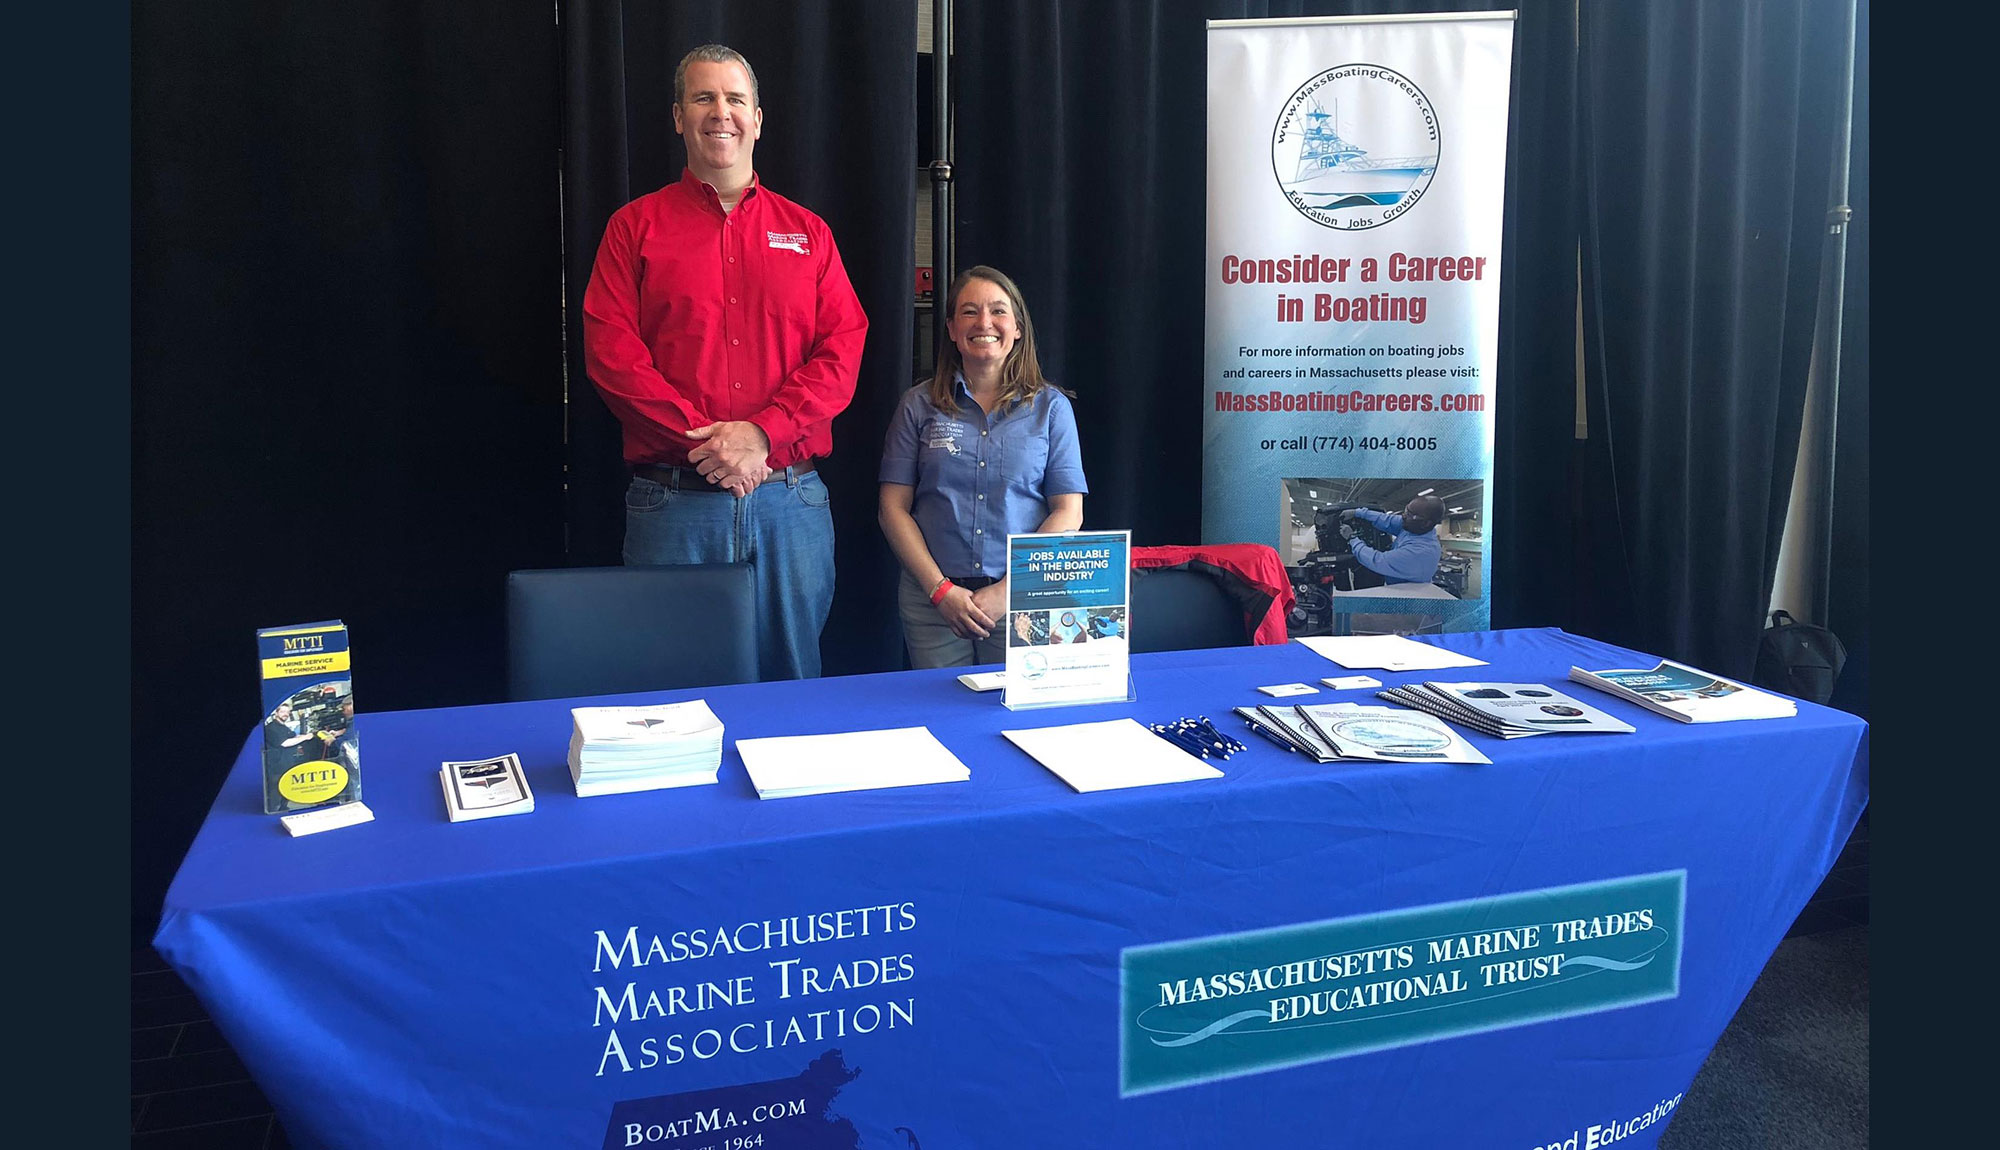 Randall Lyons, MA Marine Trades Assoc.& Alyssa Linkamper, MTTI Grad / Safe Harbor Marinas, Providing Info On Boating Careers.